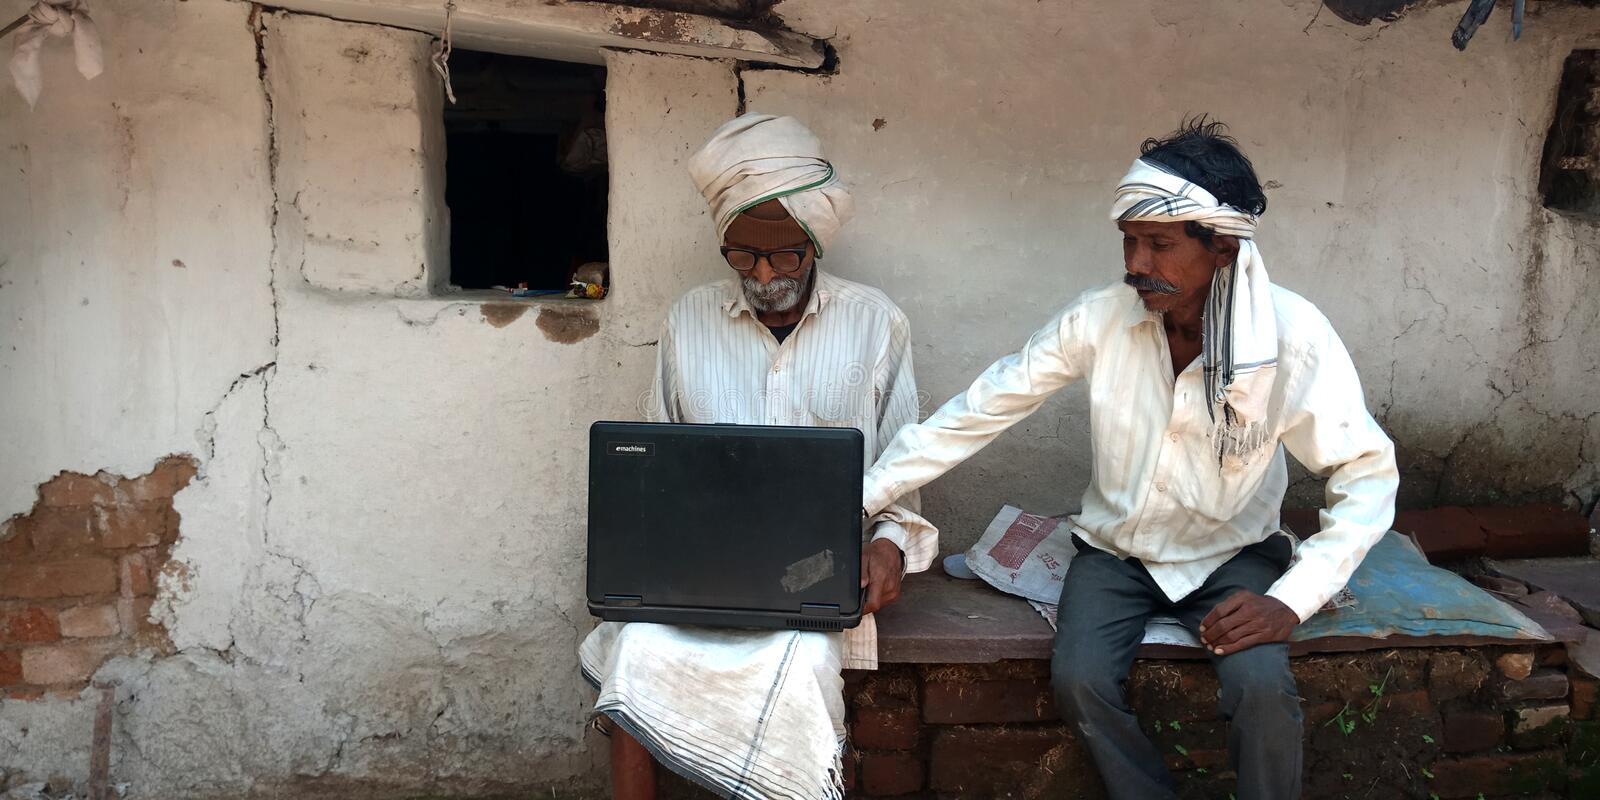 Matured villager learning about laptop computer system. Indian, illiterate, people, operating, seating, courtyard, farmer, capturing, picture, wheat, grain royalty free stock photos